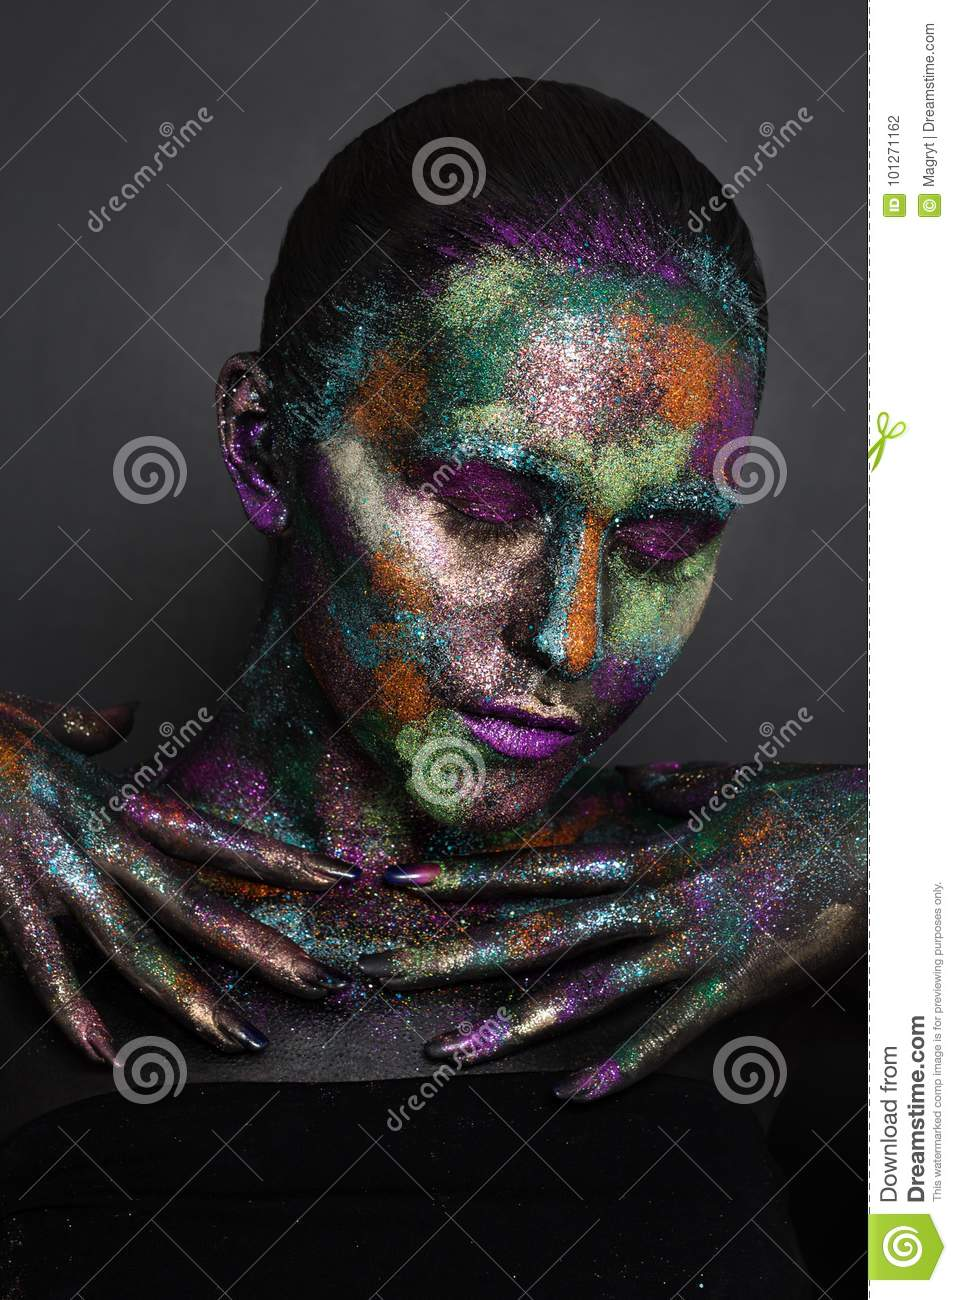 Young Artistic Woman In Black Paint And Colourful Powder Glowing Dark Makeup Creative Body Art On The Theme Of Space Stock Photo Image Of Female Cosmetics 101271162